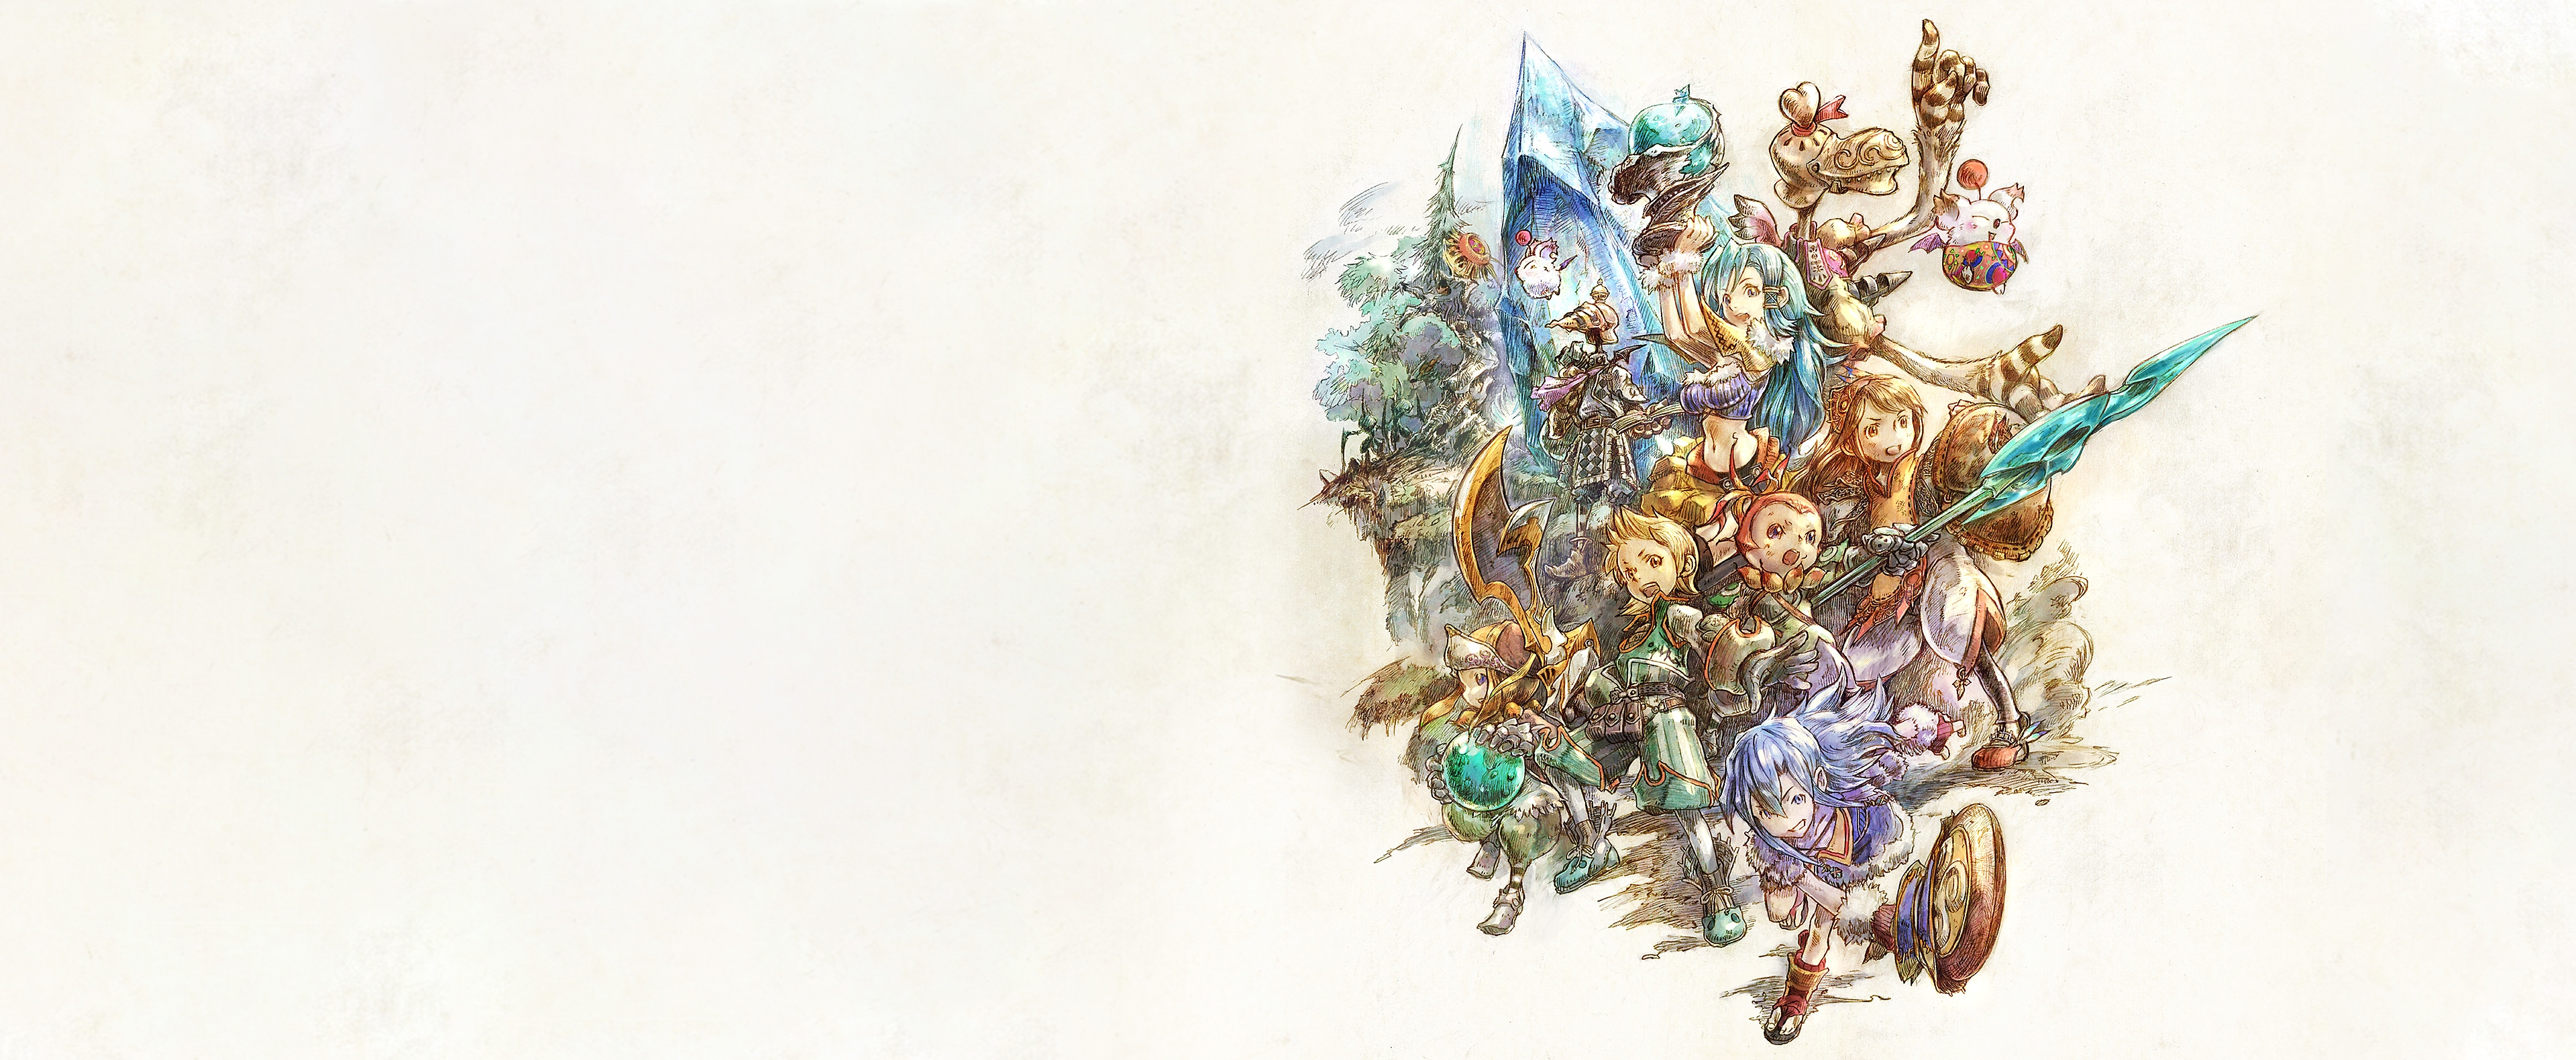 Final Fantasy Crystal Chronicles Remastered Edition – Haupt-Keyart